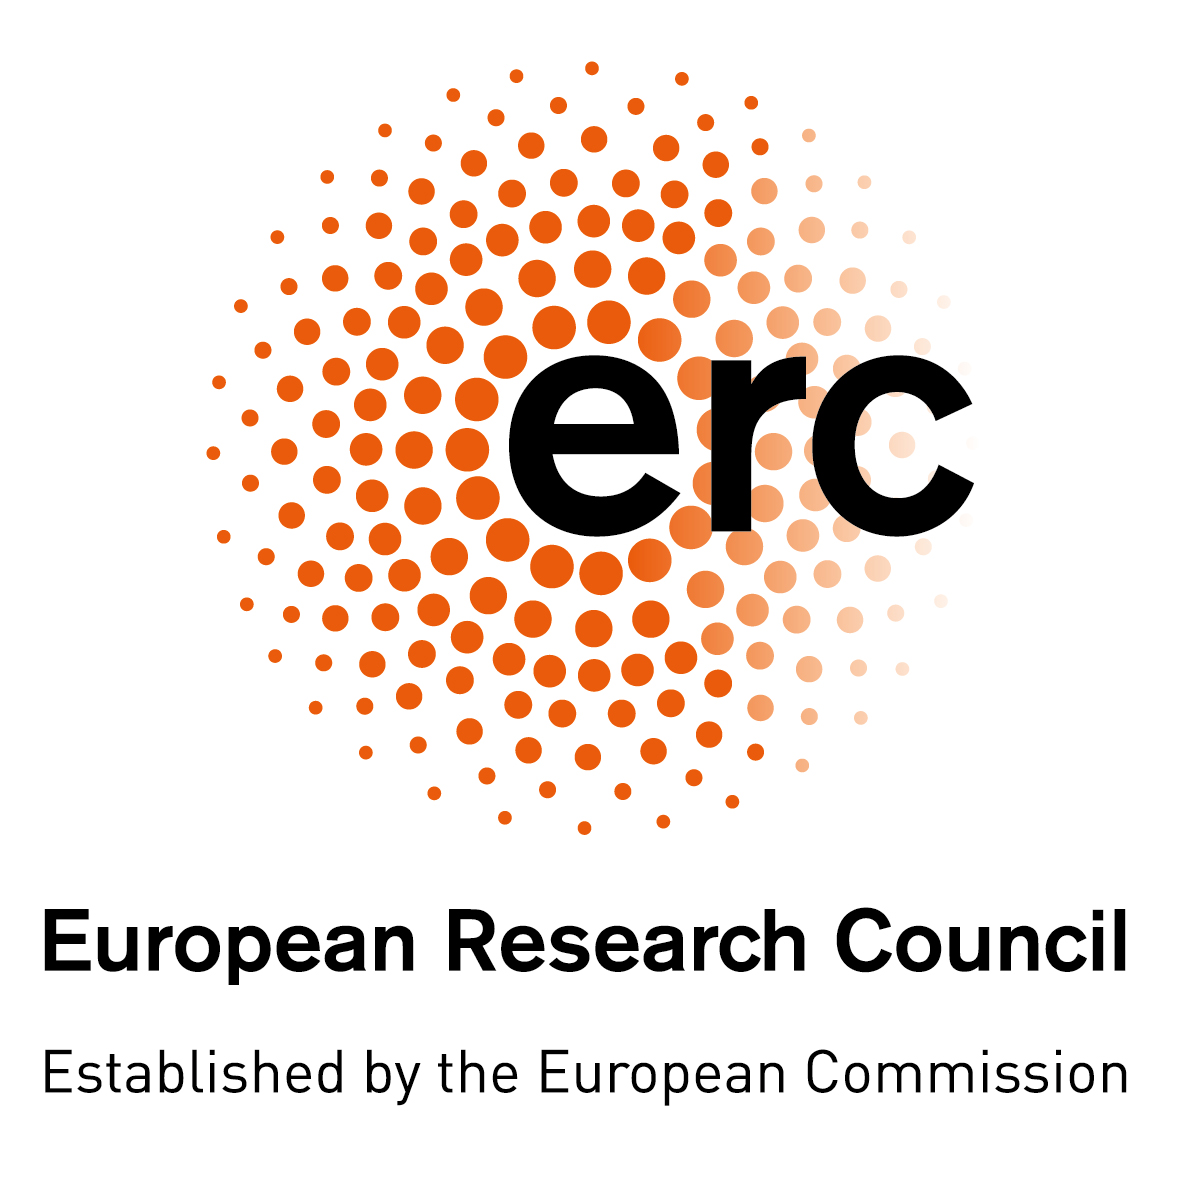 https://erc.europa.eu/sites/default/files/LOGO_ERC.jpg